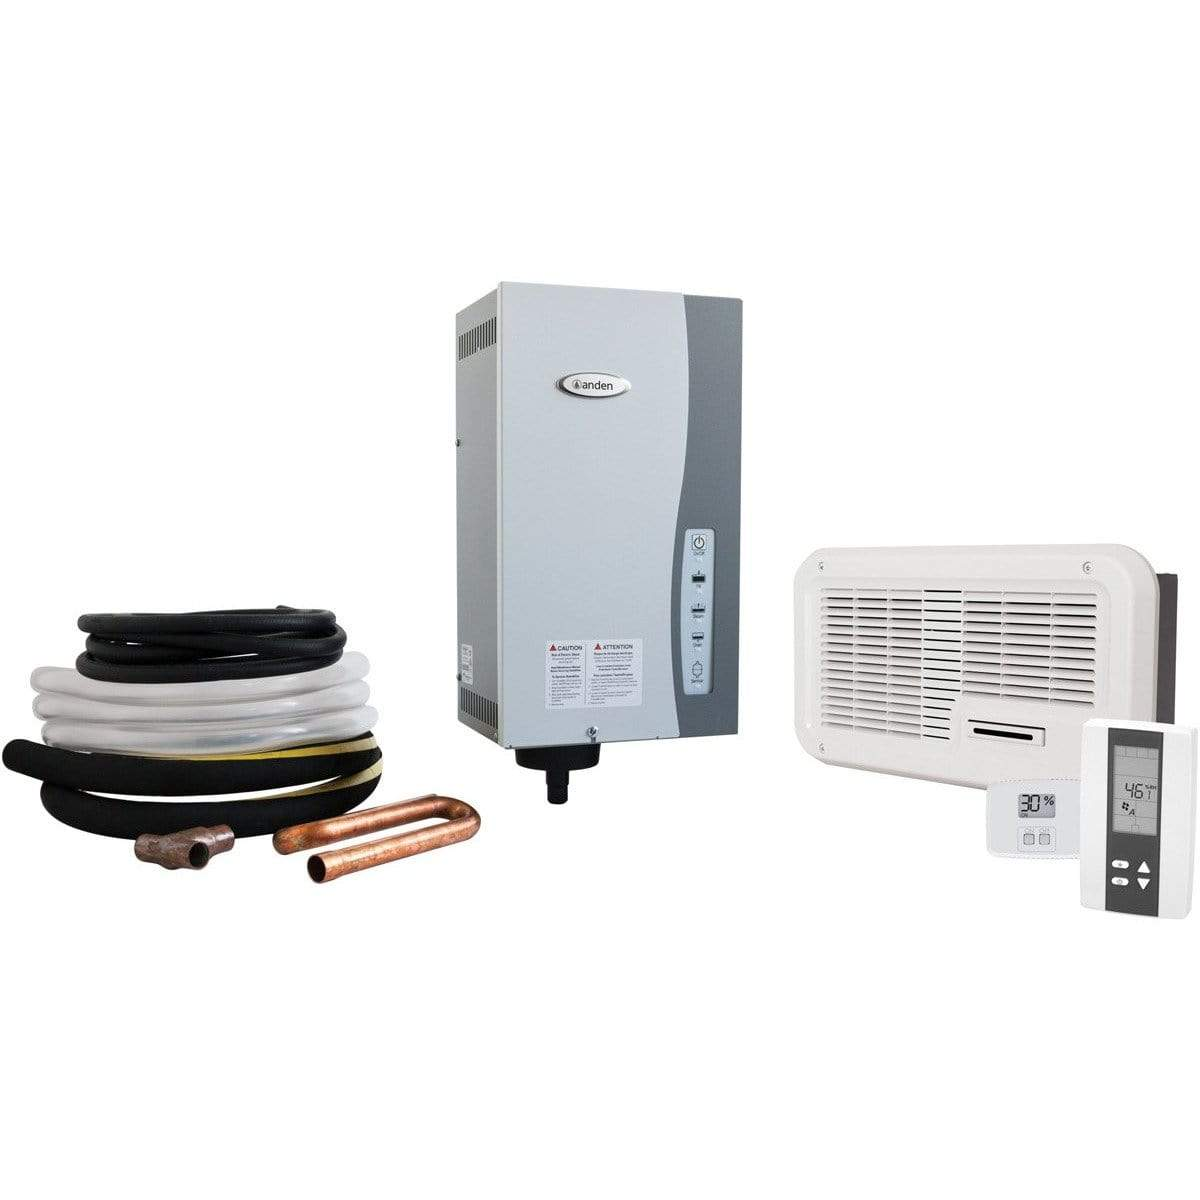 Anden Steam Humidifier w/Fan Pack and Digital Humidistat | YourGrowDepot.com